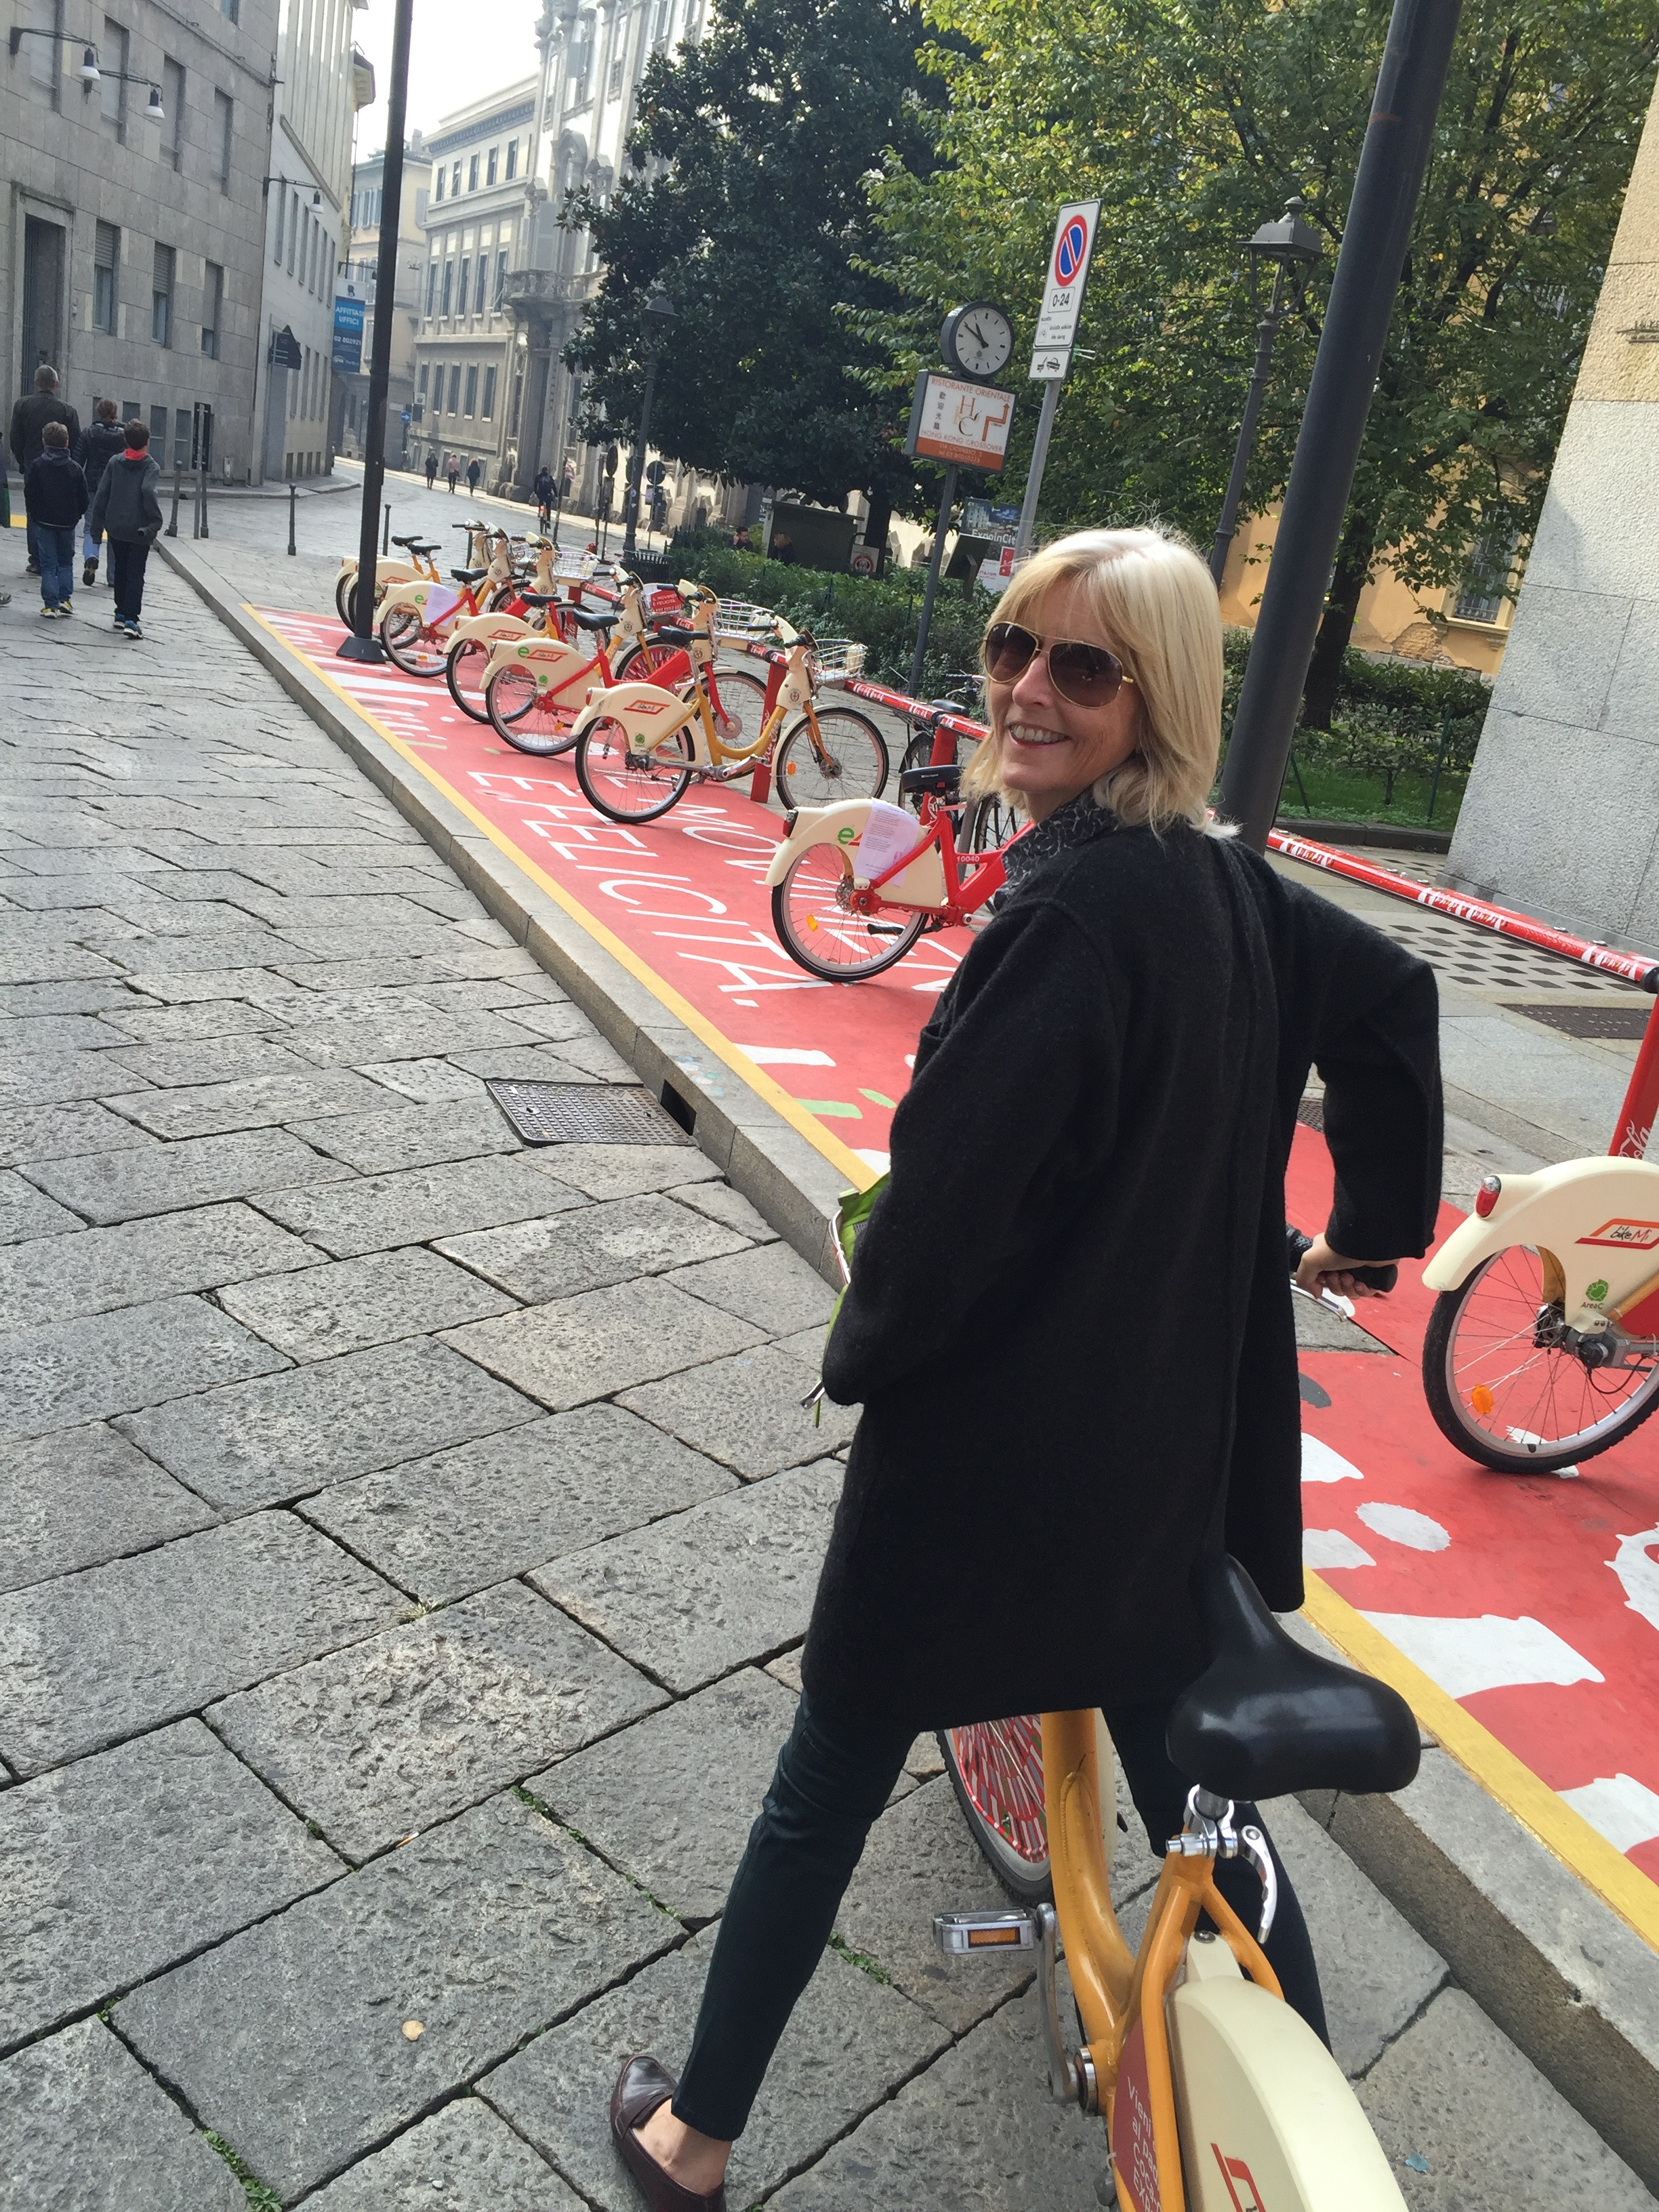 Biking is the best way to explore a city - Milan.